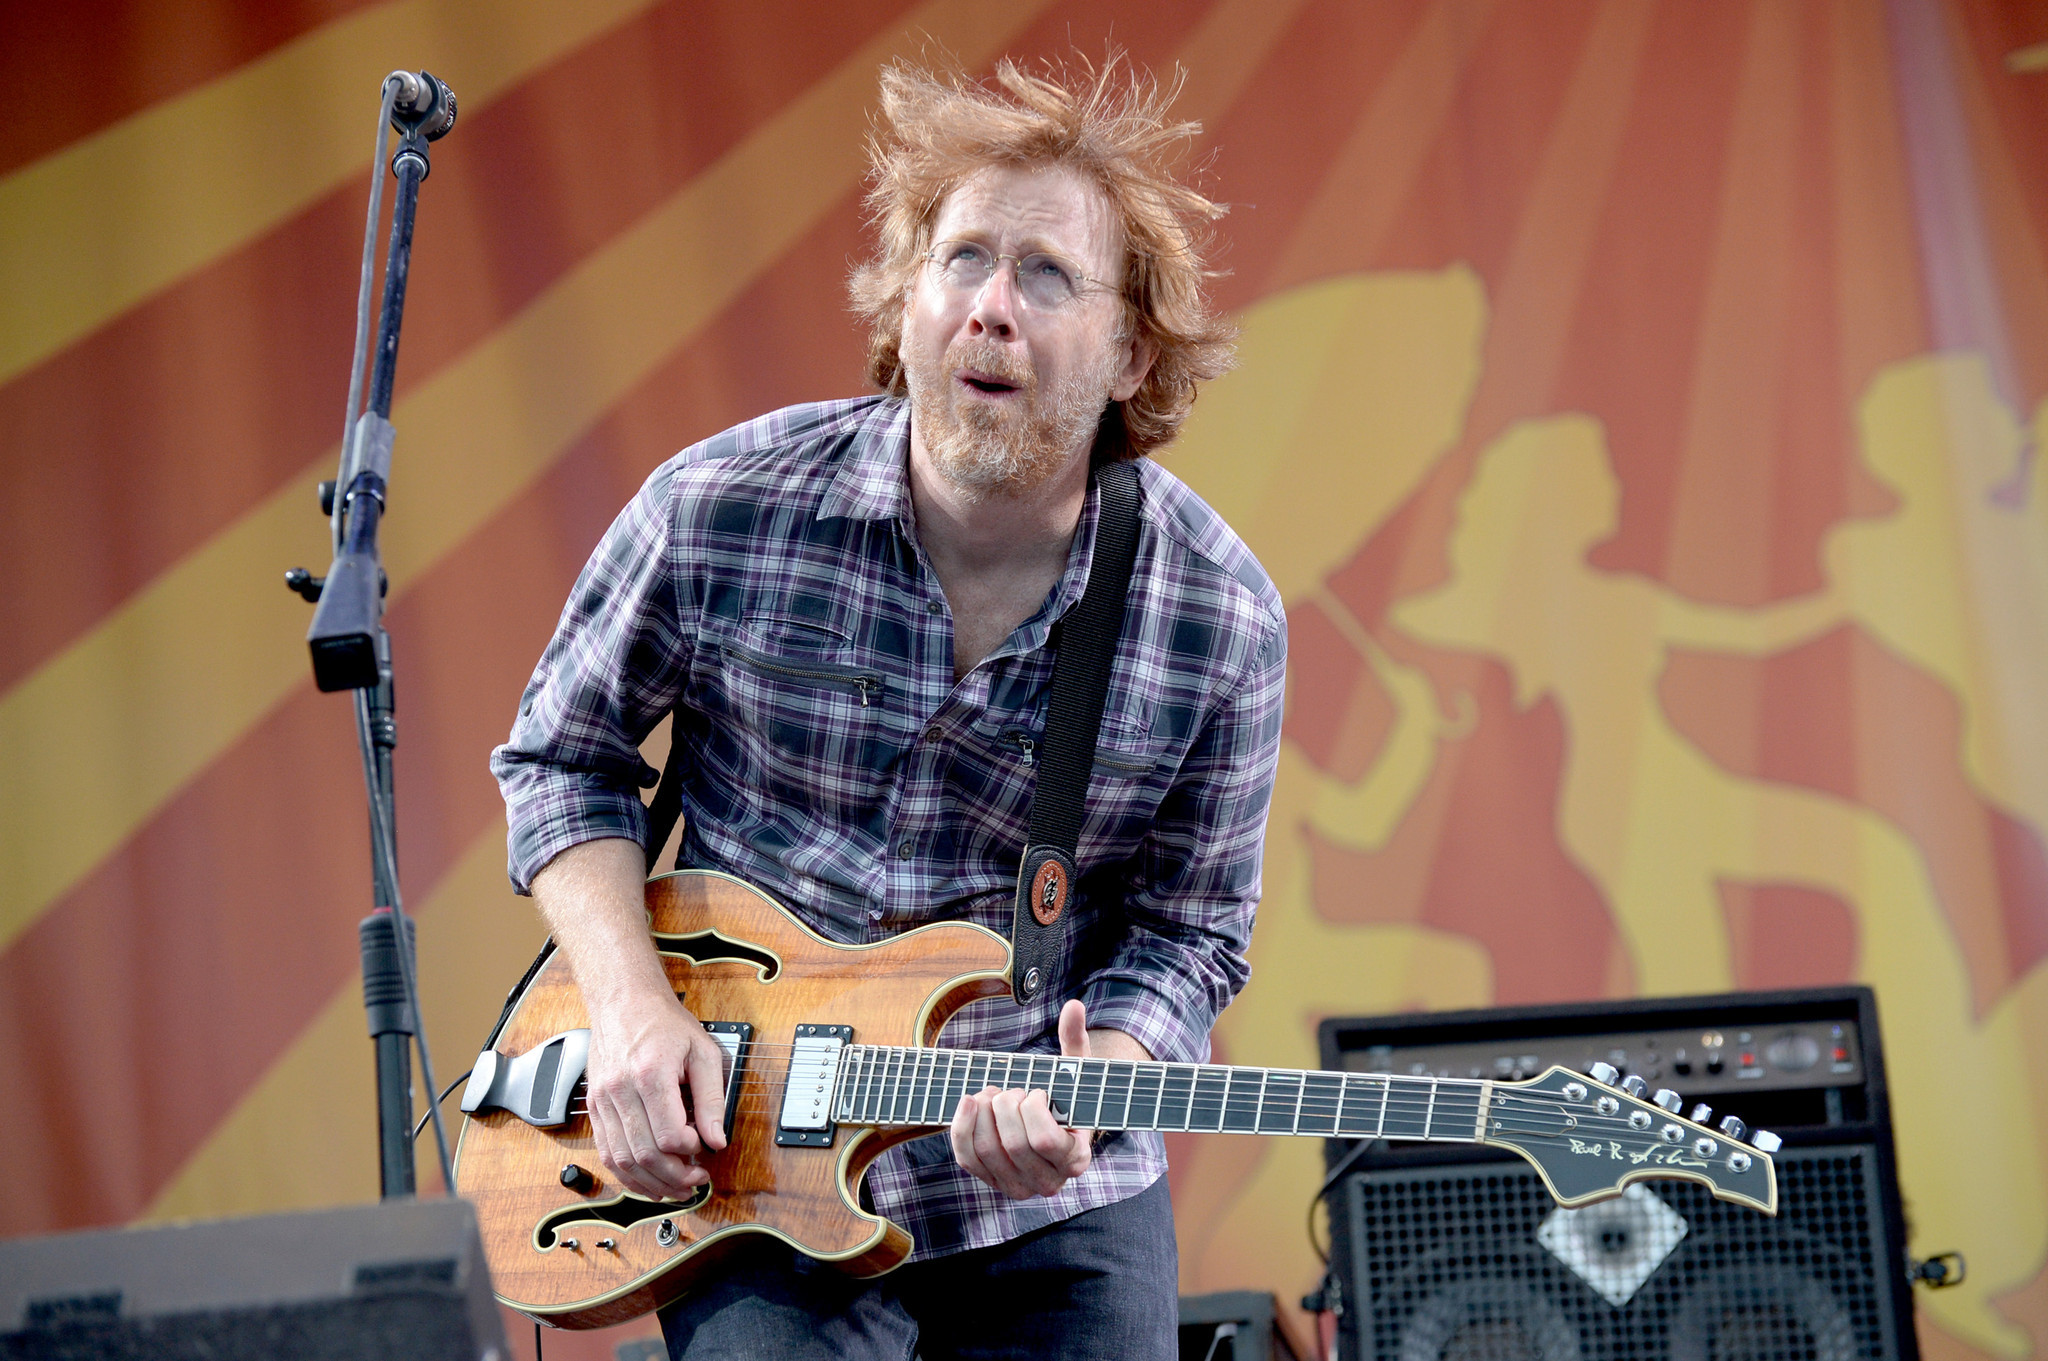 Phish and the evolution of jamming